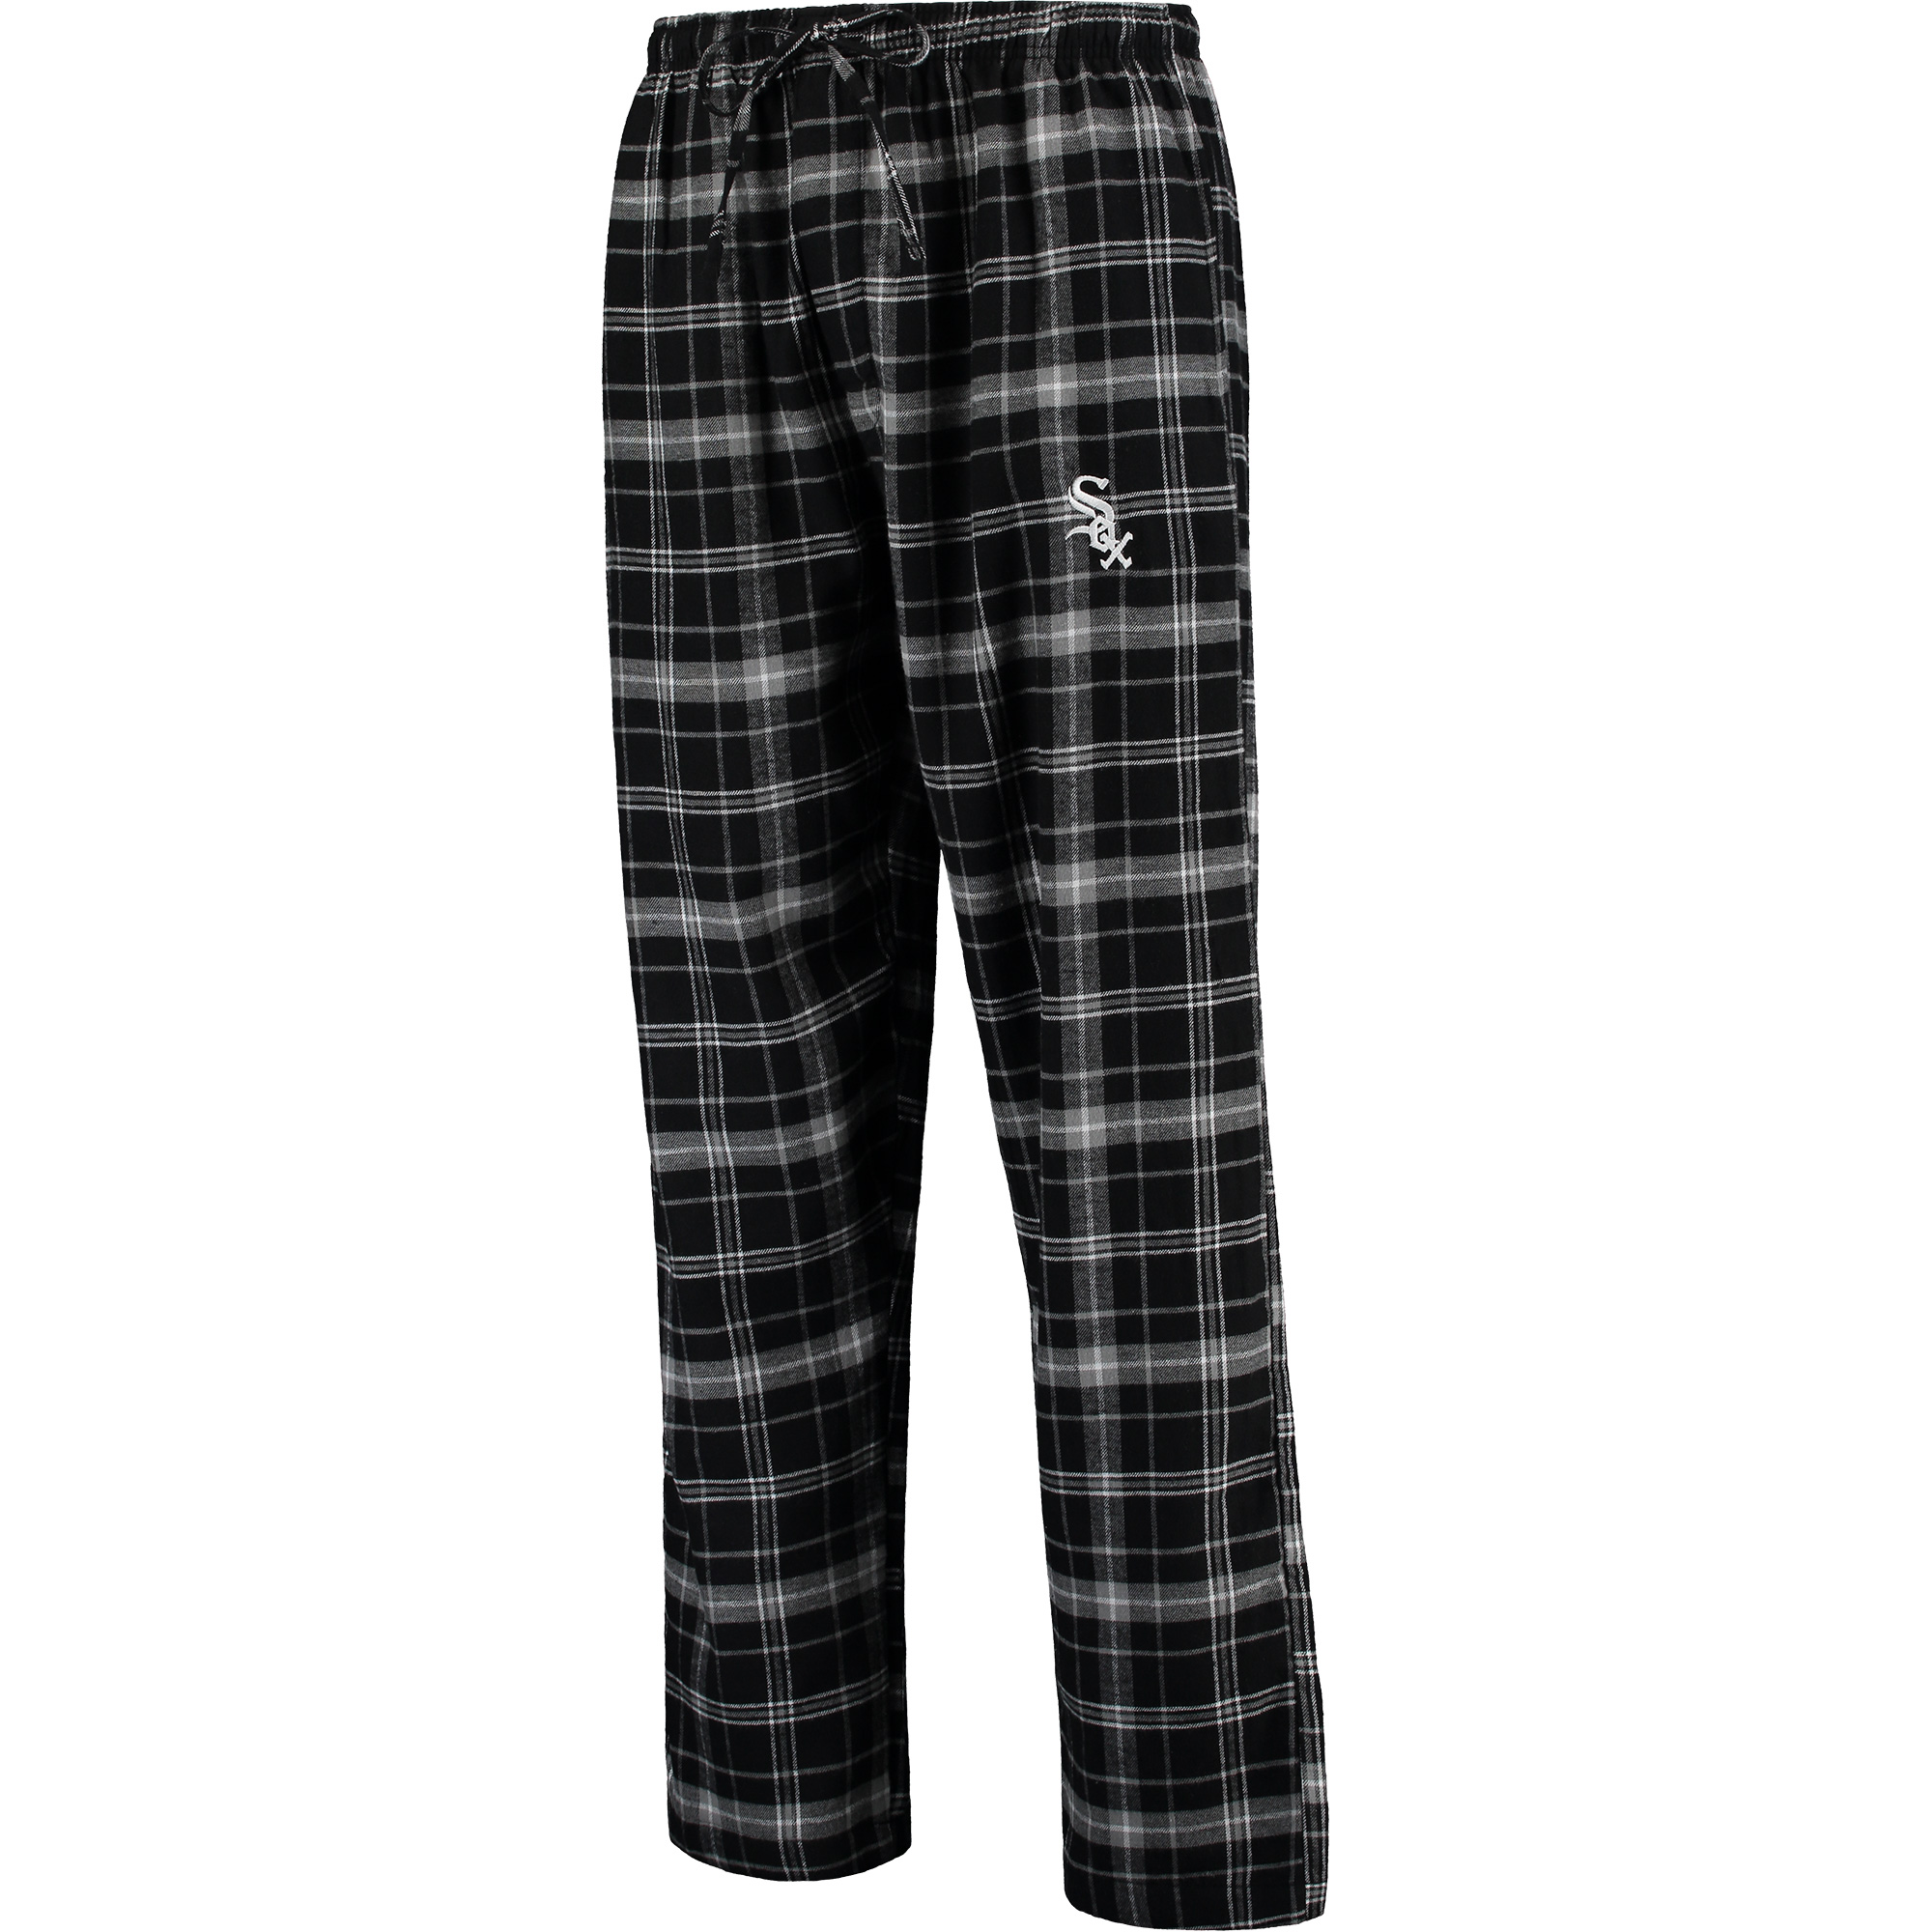 Chicago White Sox Concepts Sport Ultimate Plaid Flannel Pants - Black/Gray